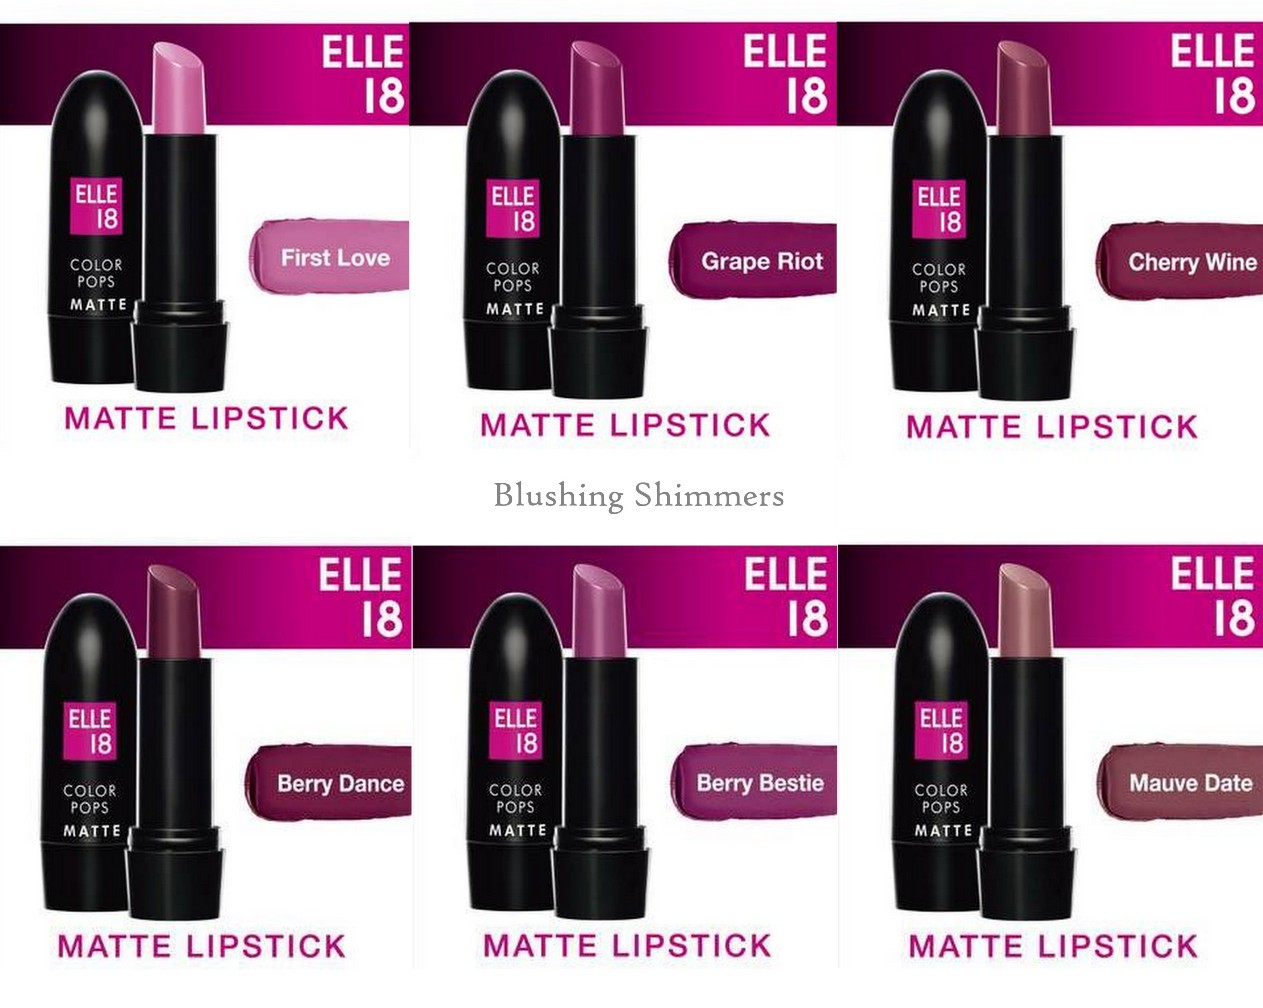 Elle 18 Color Pop Matte Lip Color purple